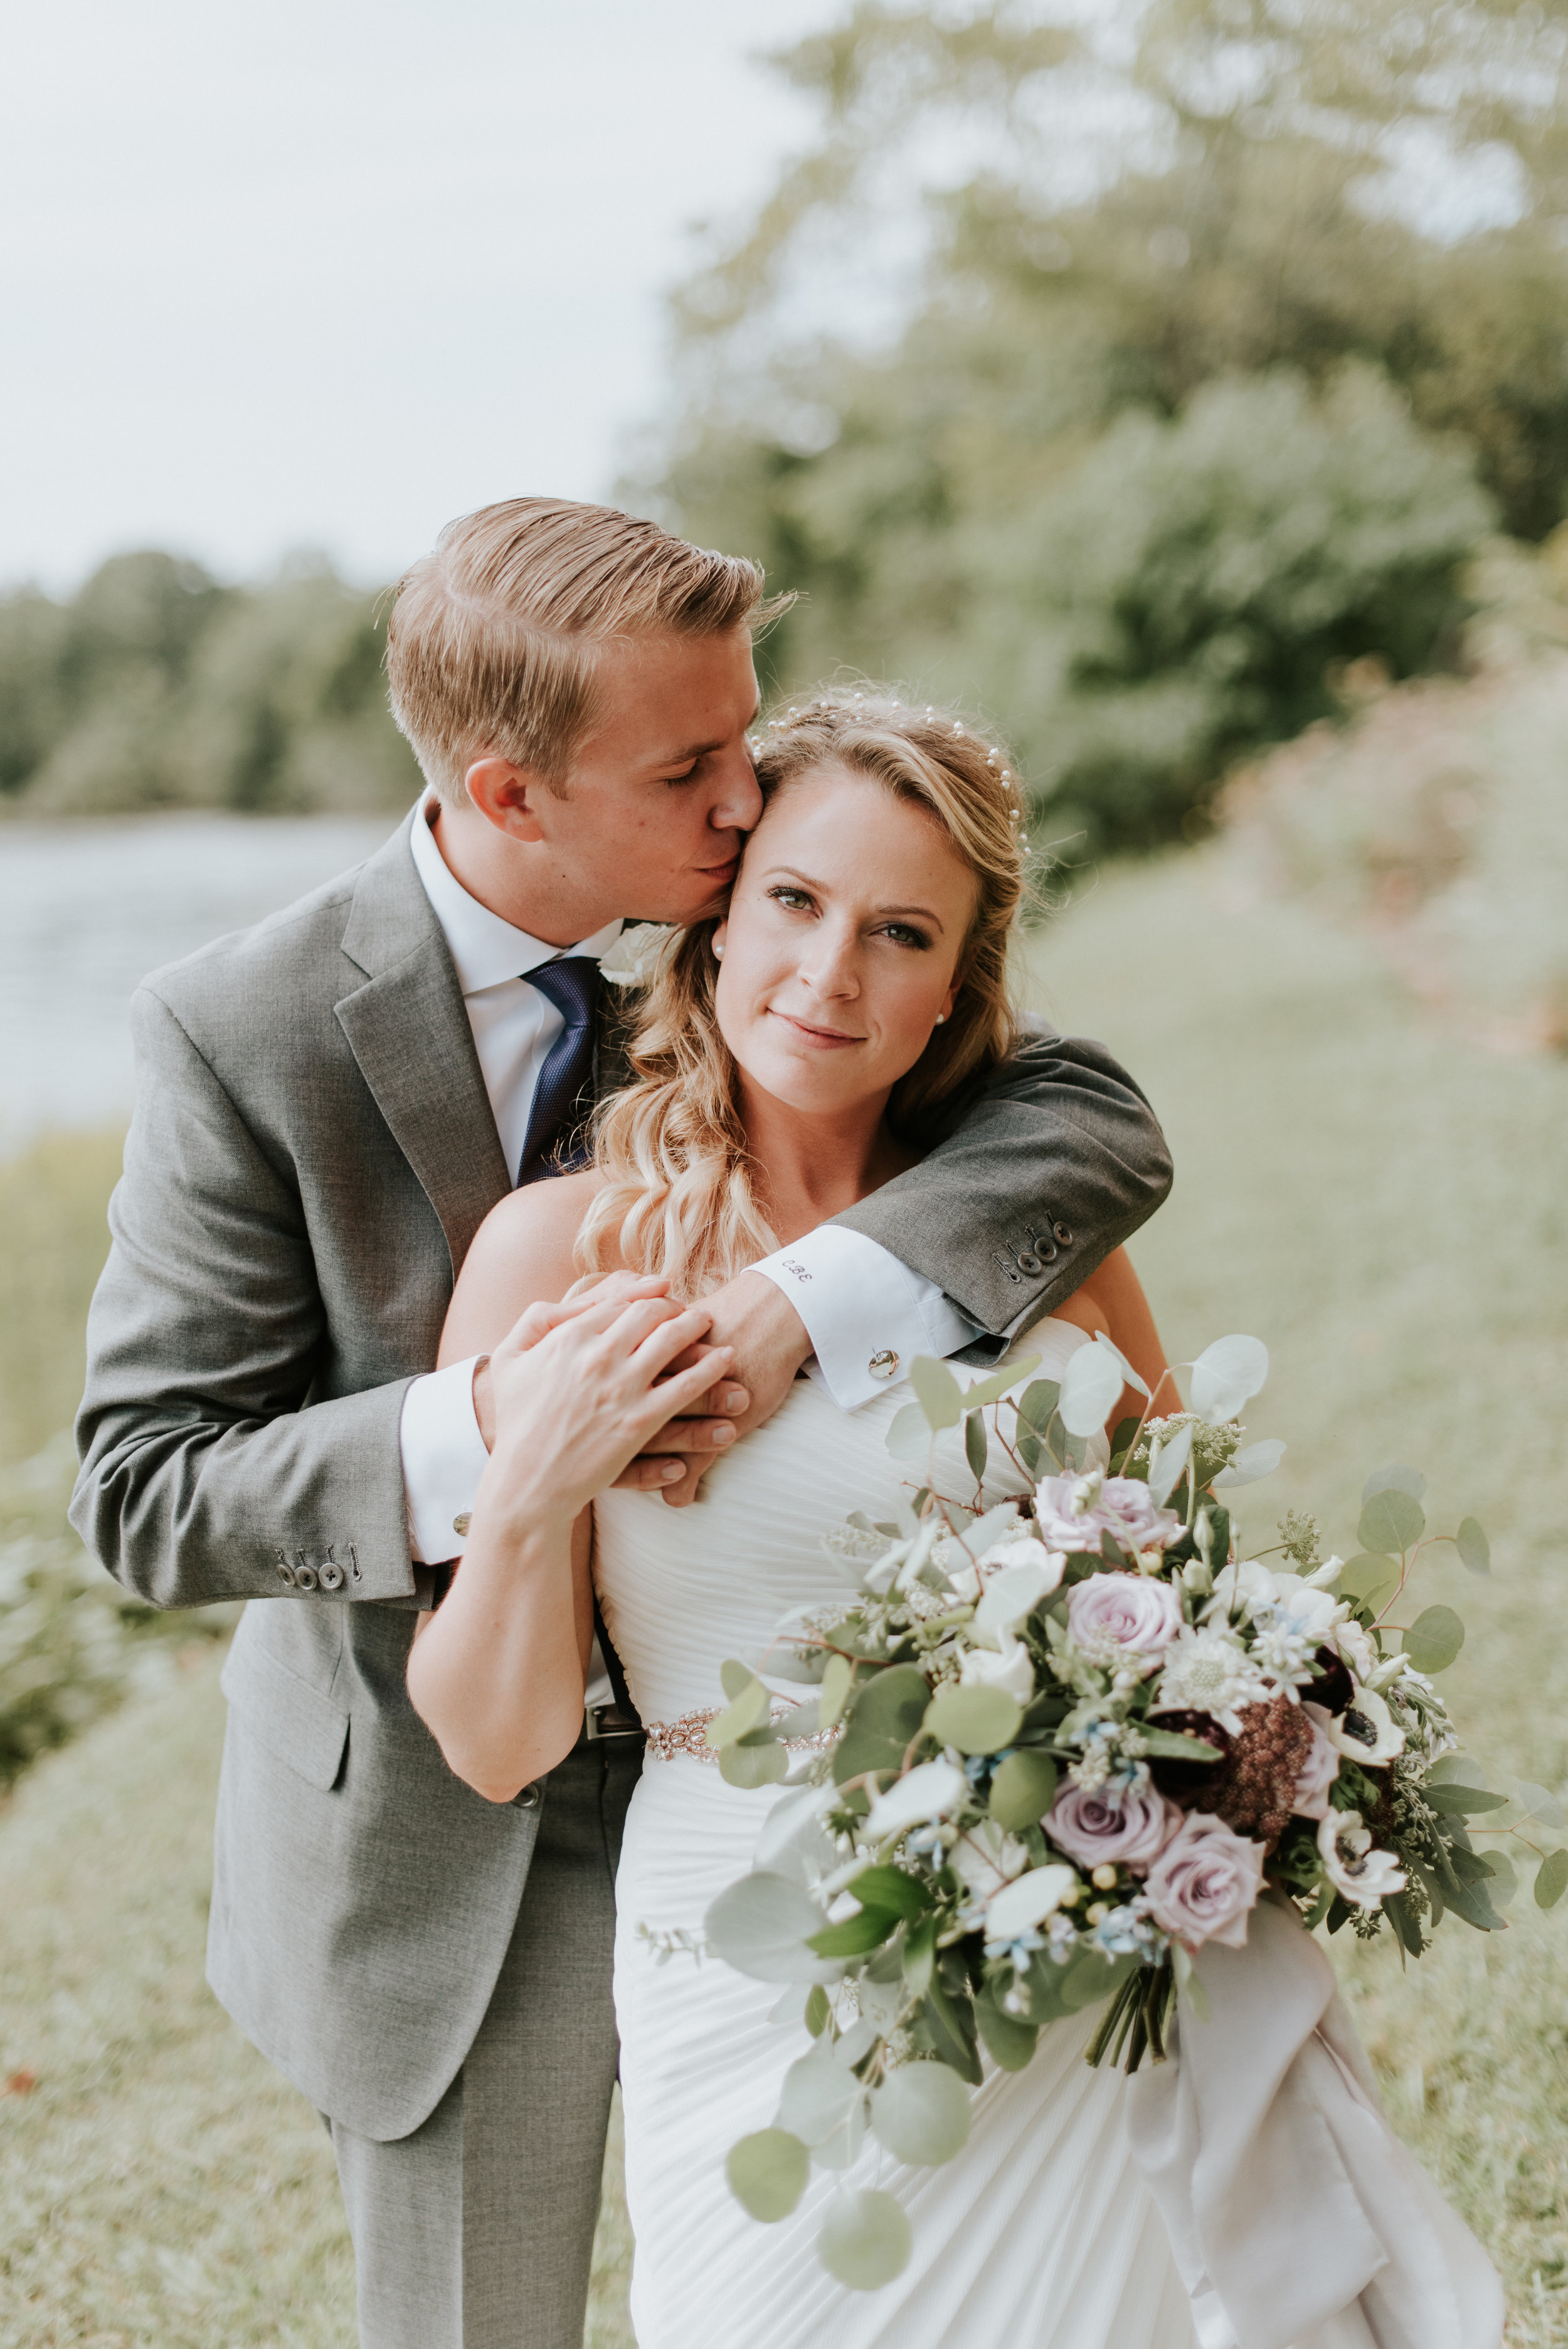 Rustic Oyster Themed Eastern Shore Maryland Outdoor Wedding by East Made Event Company Wedding Planner and Bekah Kay Creative226.jpg